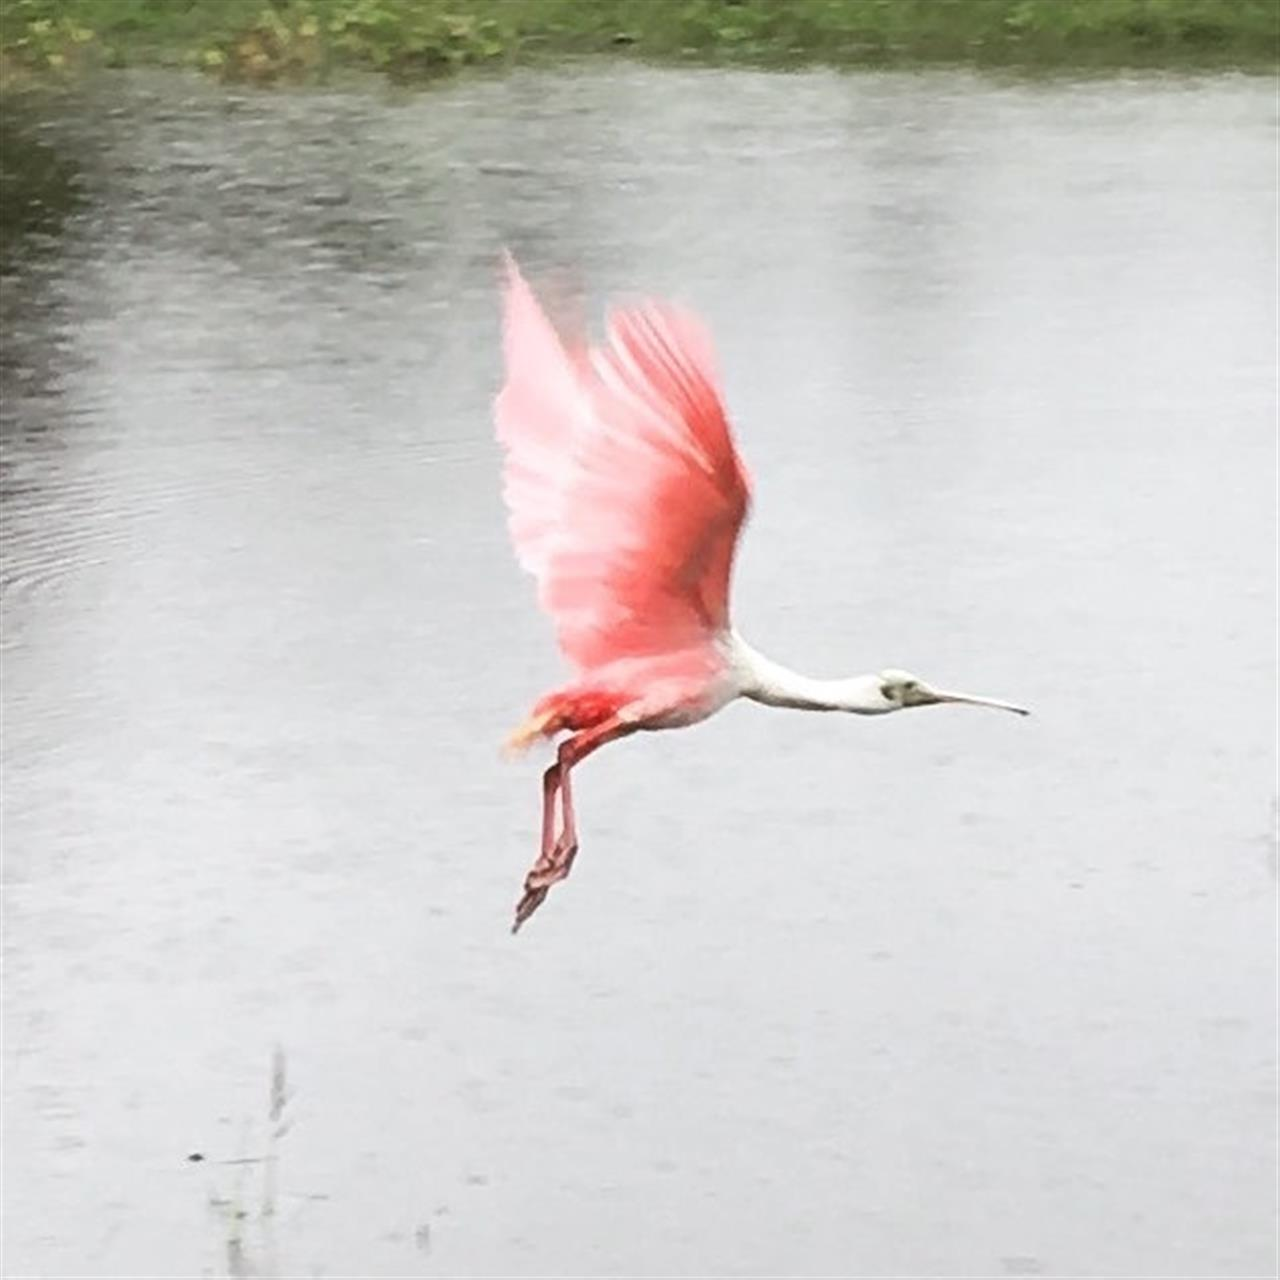 Roseate Spoonbill captured in flight in Manatee County Florida